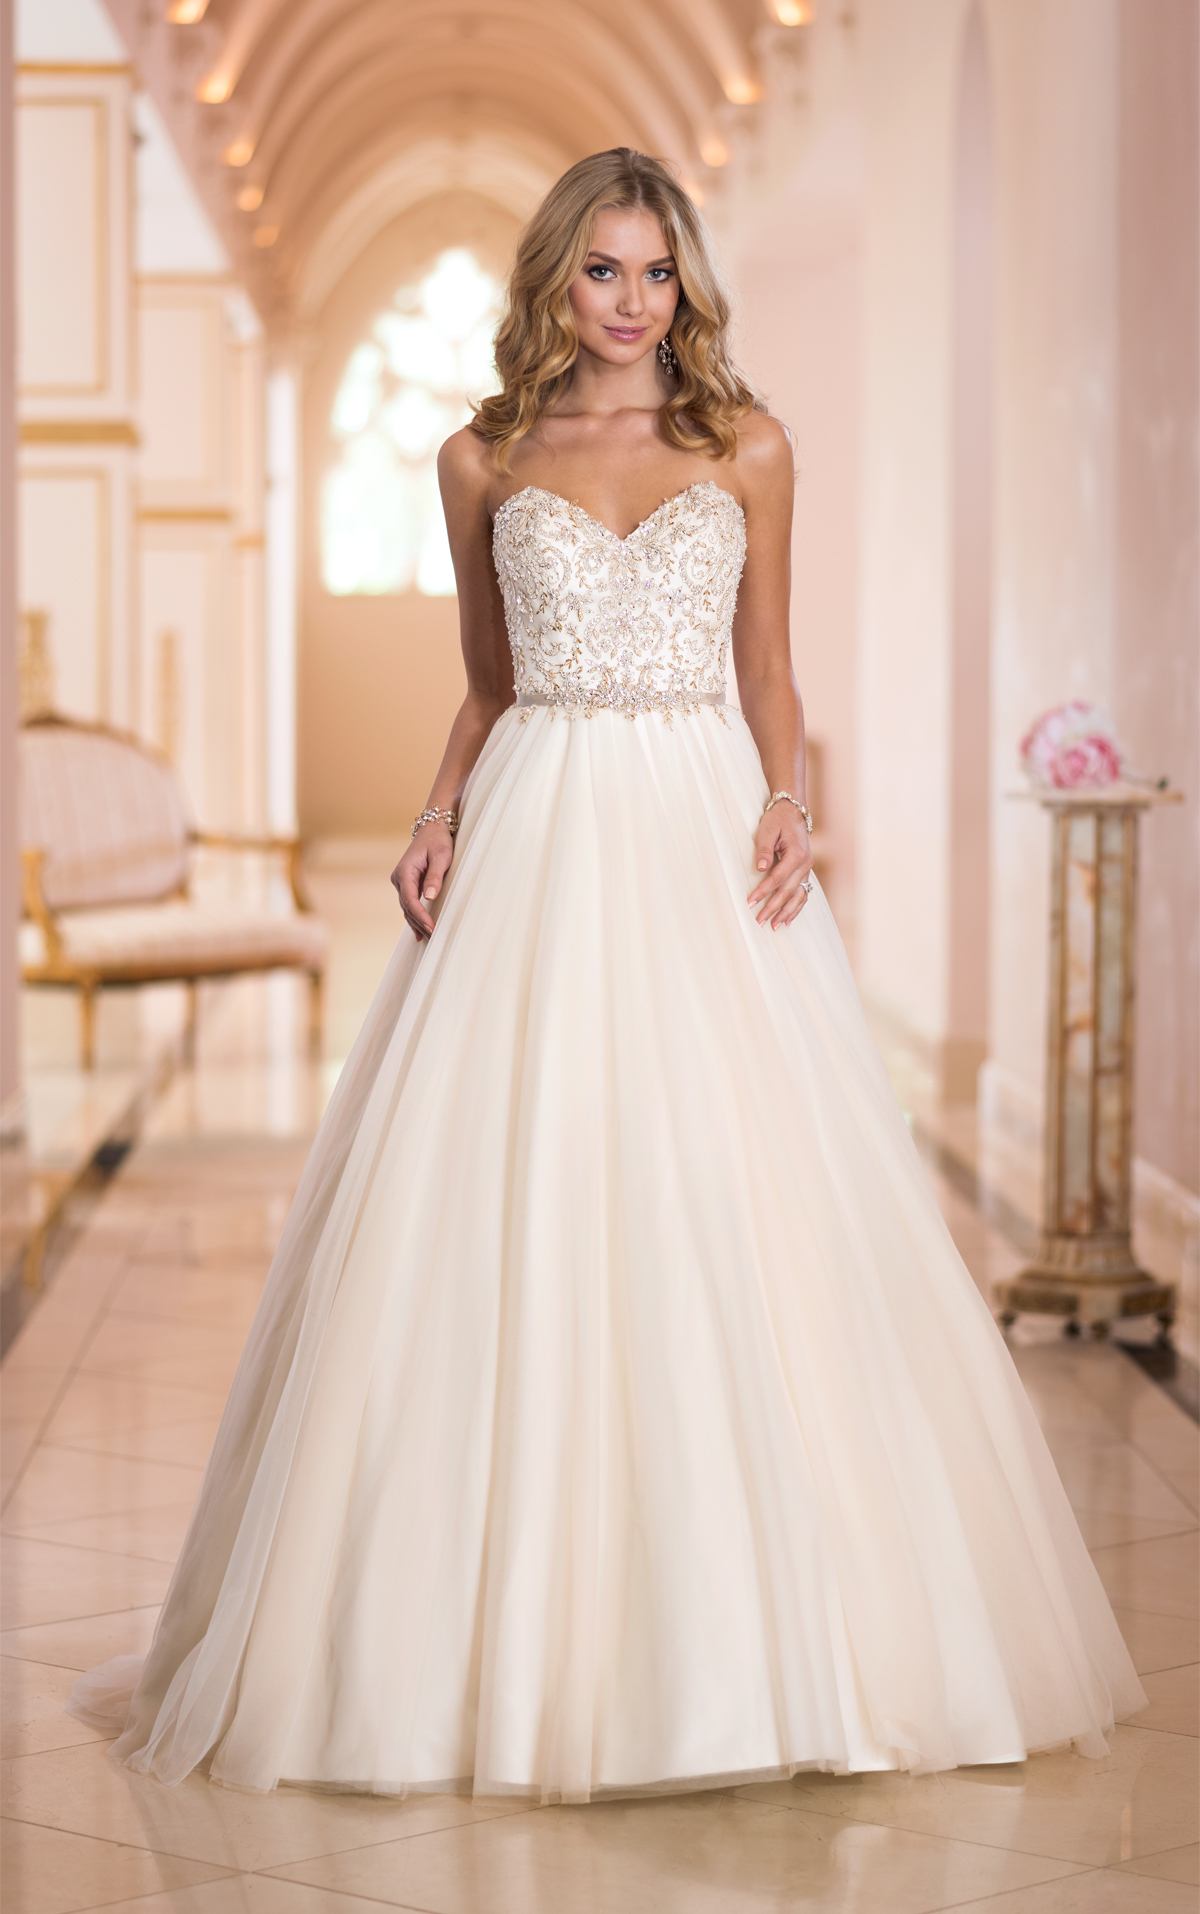 Sexy and extravagant stella york wedding dresses 2014 modwedding stella york wedding dresses 2014 4 01162014 ombrellifo Choice Image